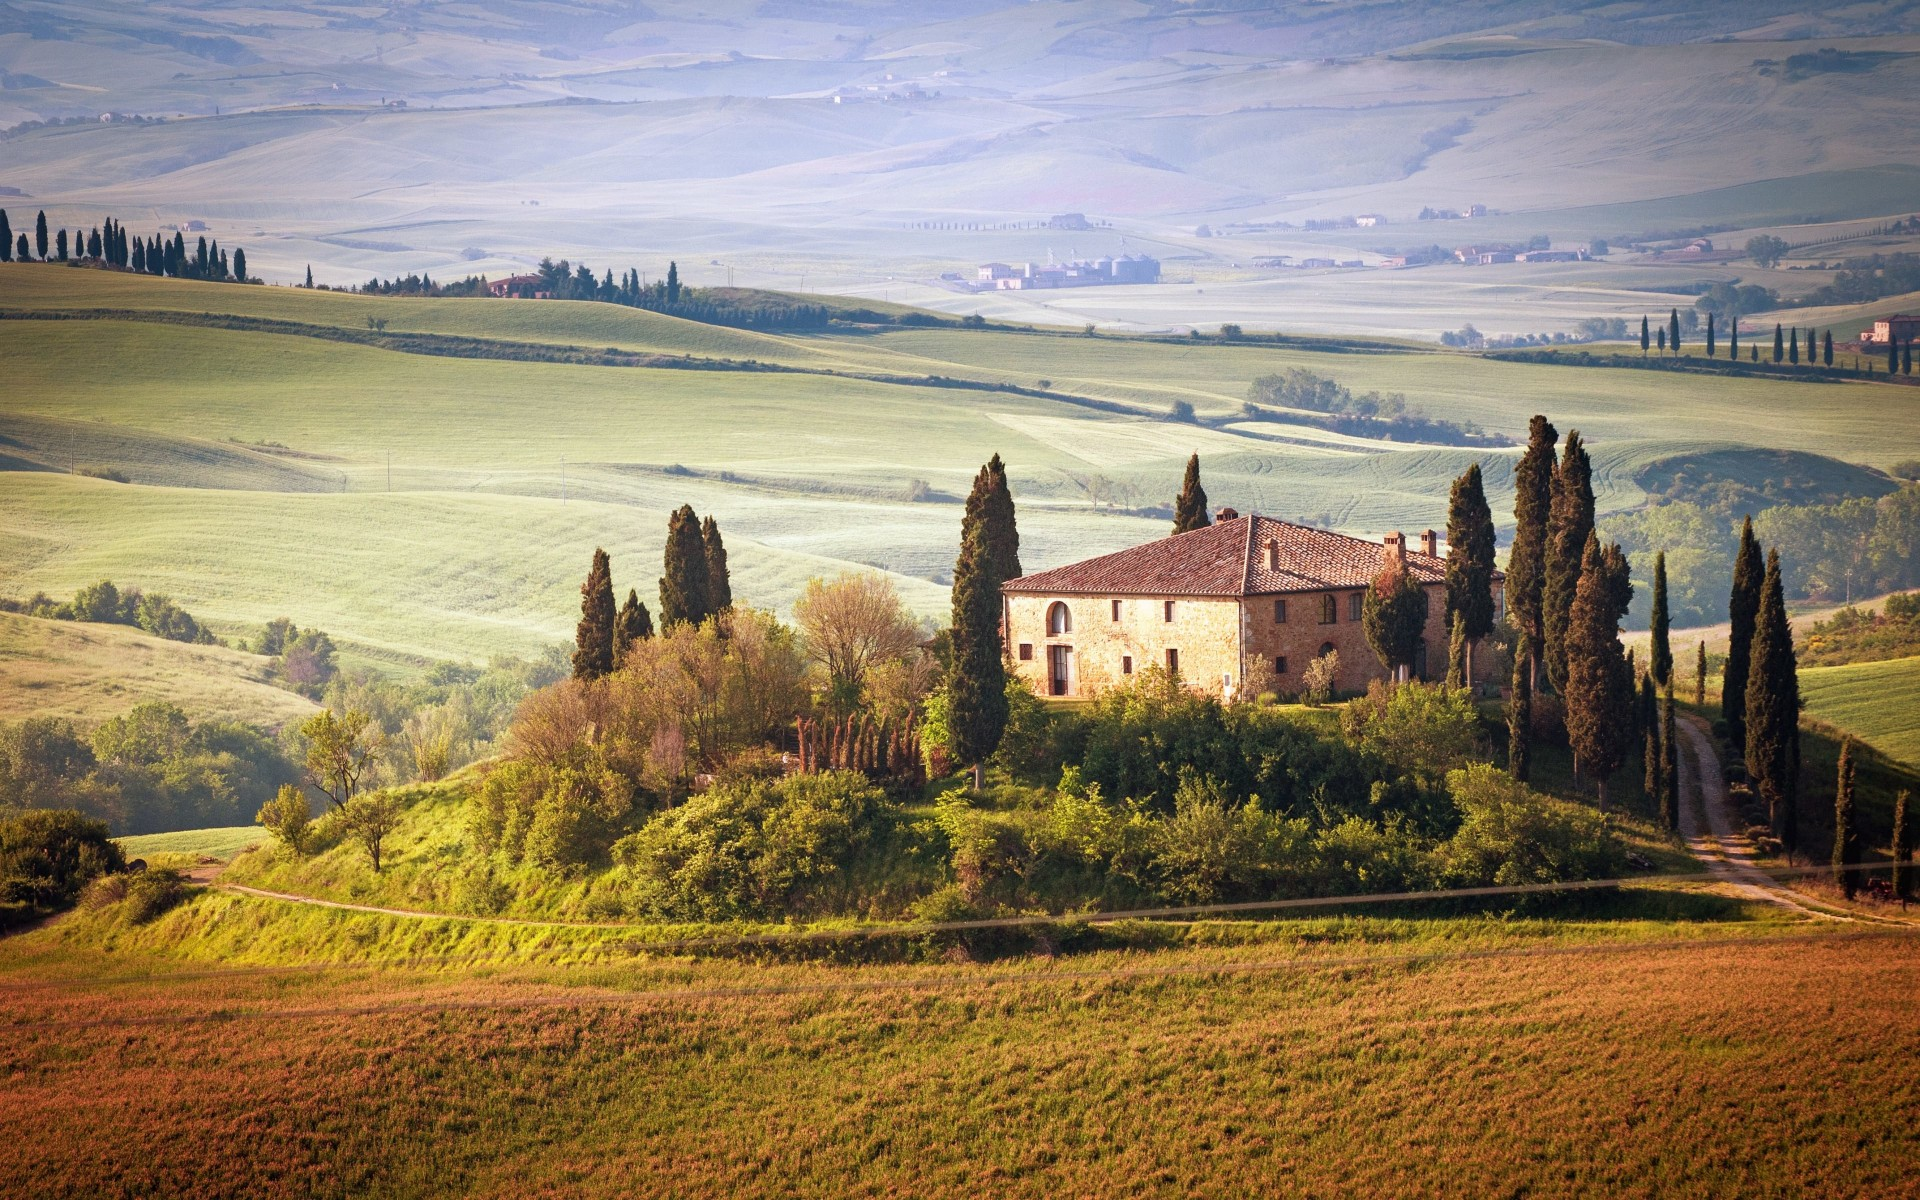 Summer in Tuscany, Italy Wallpaper for Desktop 1920x1200